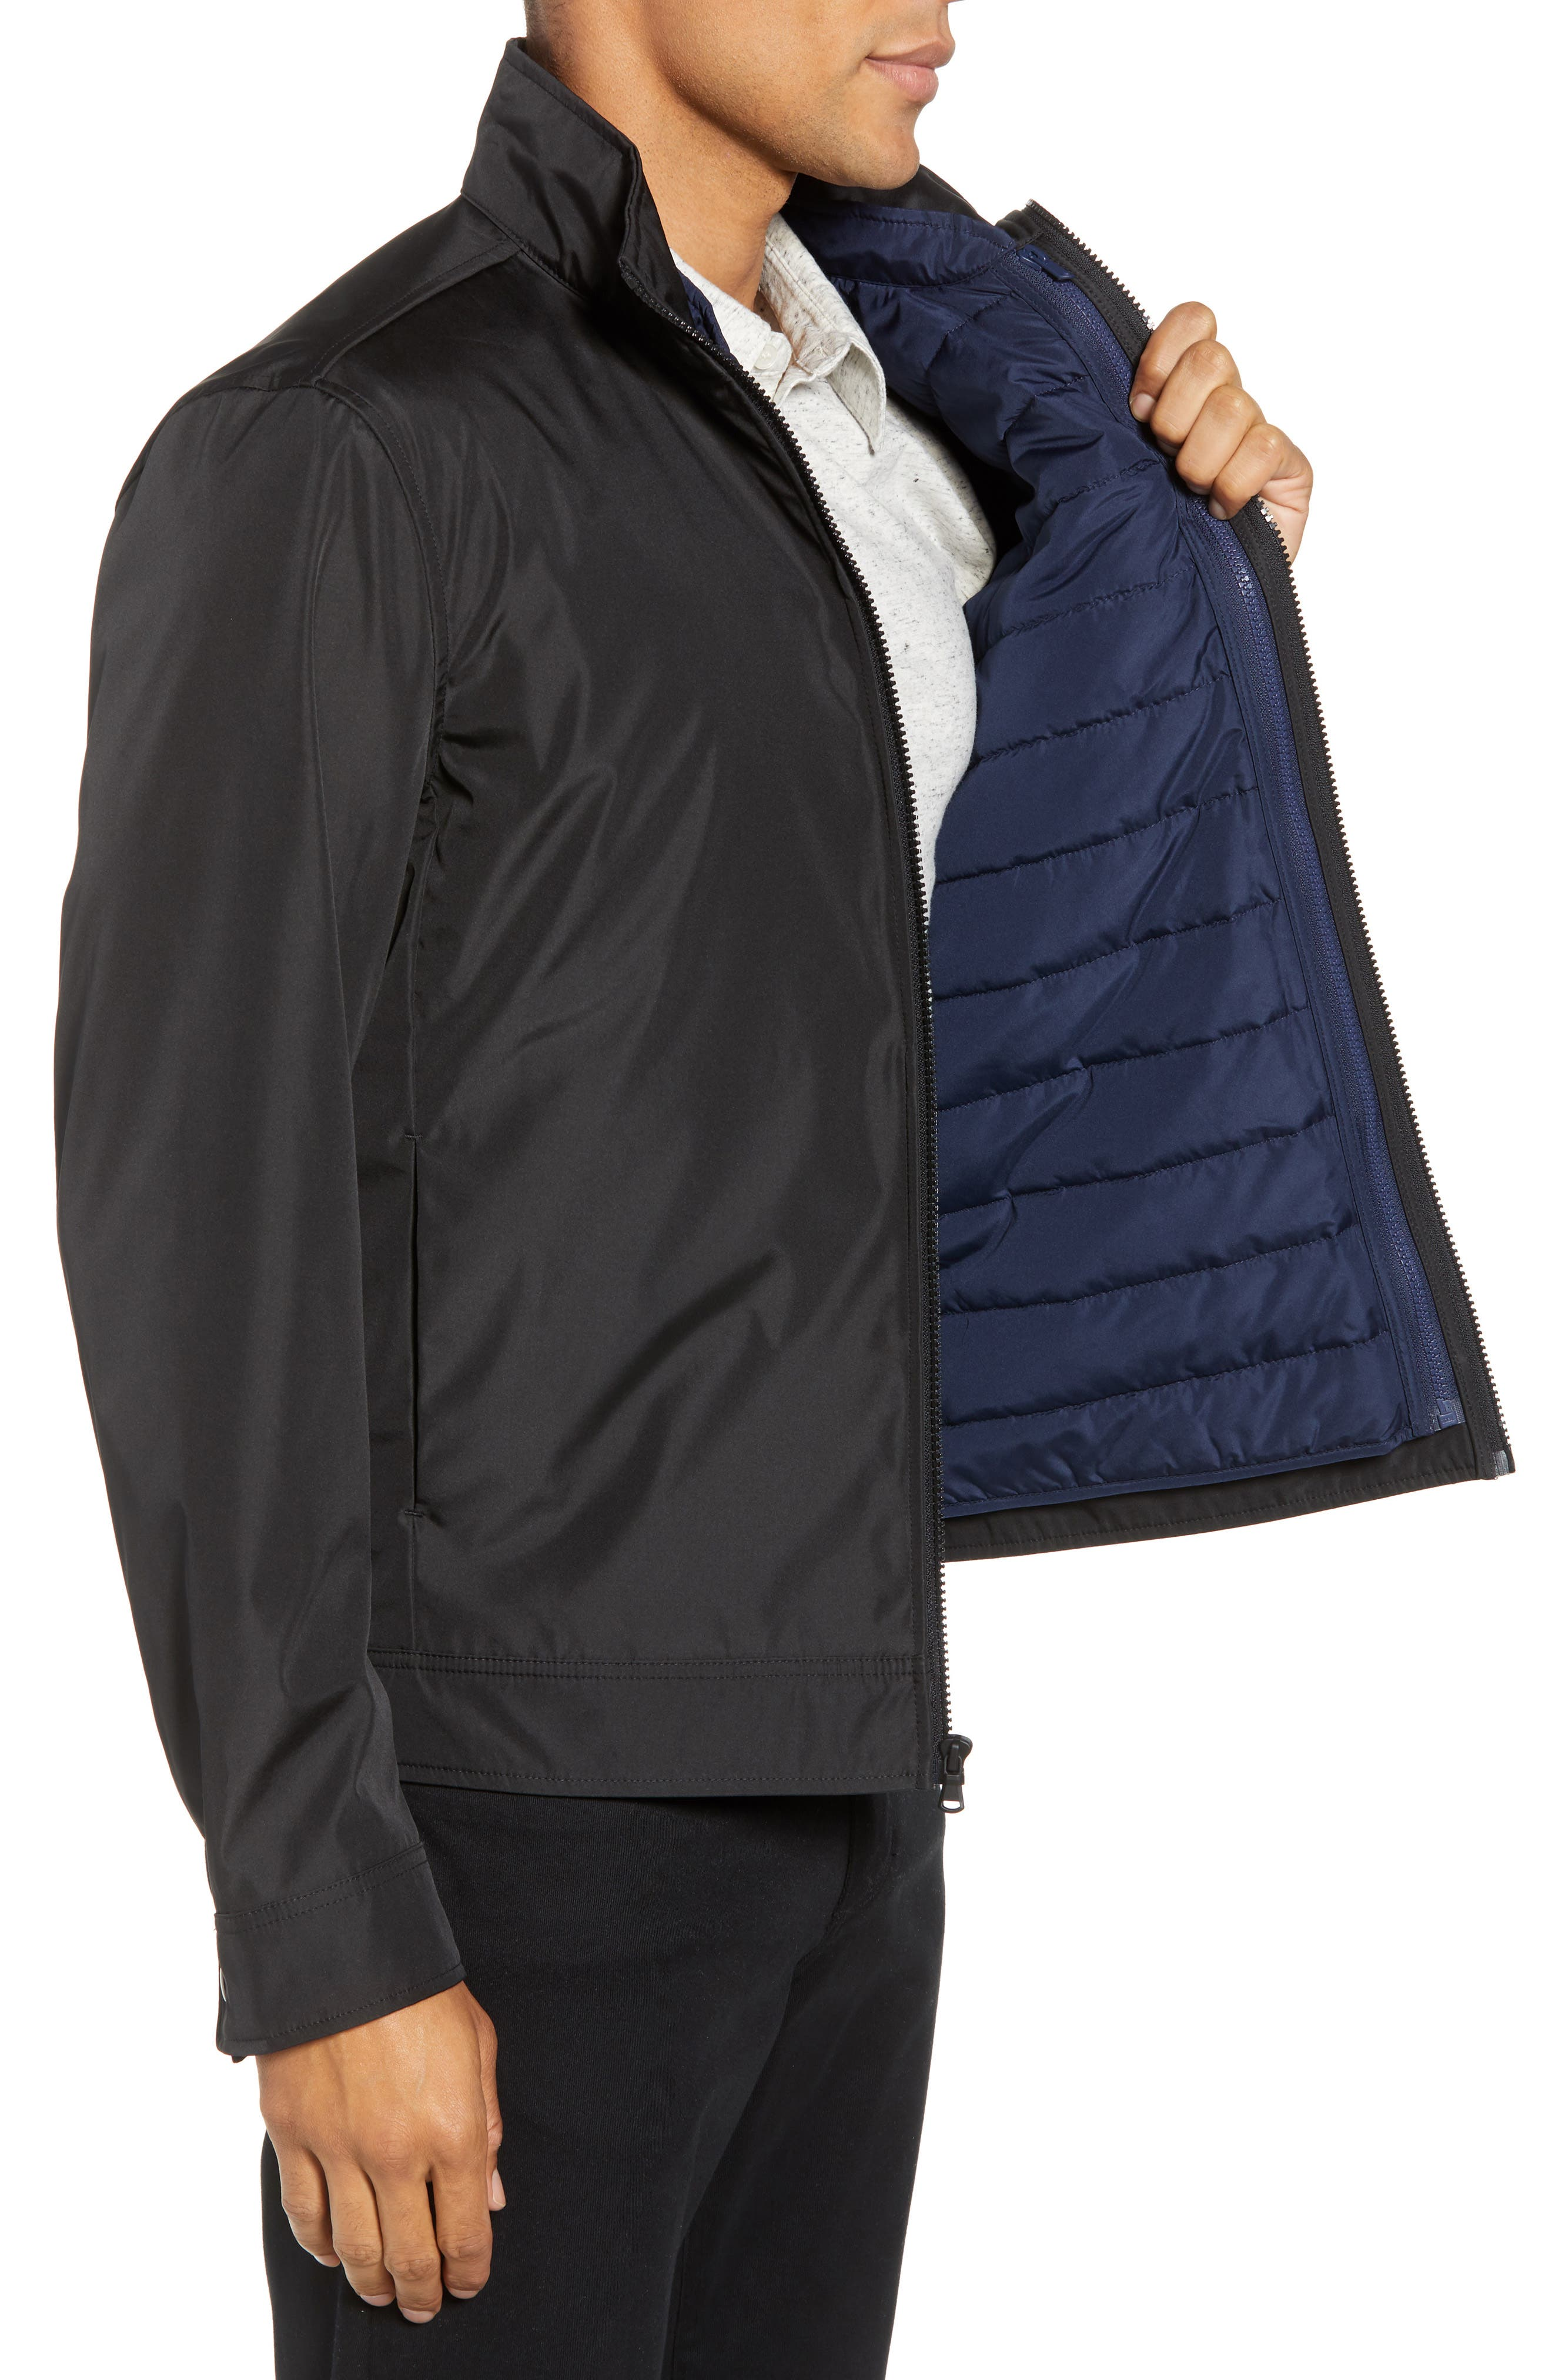 Oxford 2-in-1 Jacket,                             Alternate thumbnail 3, color,                             BLACK